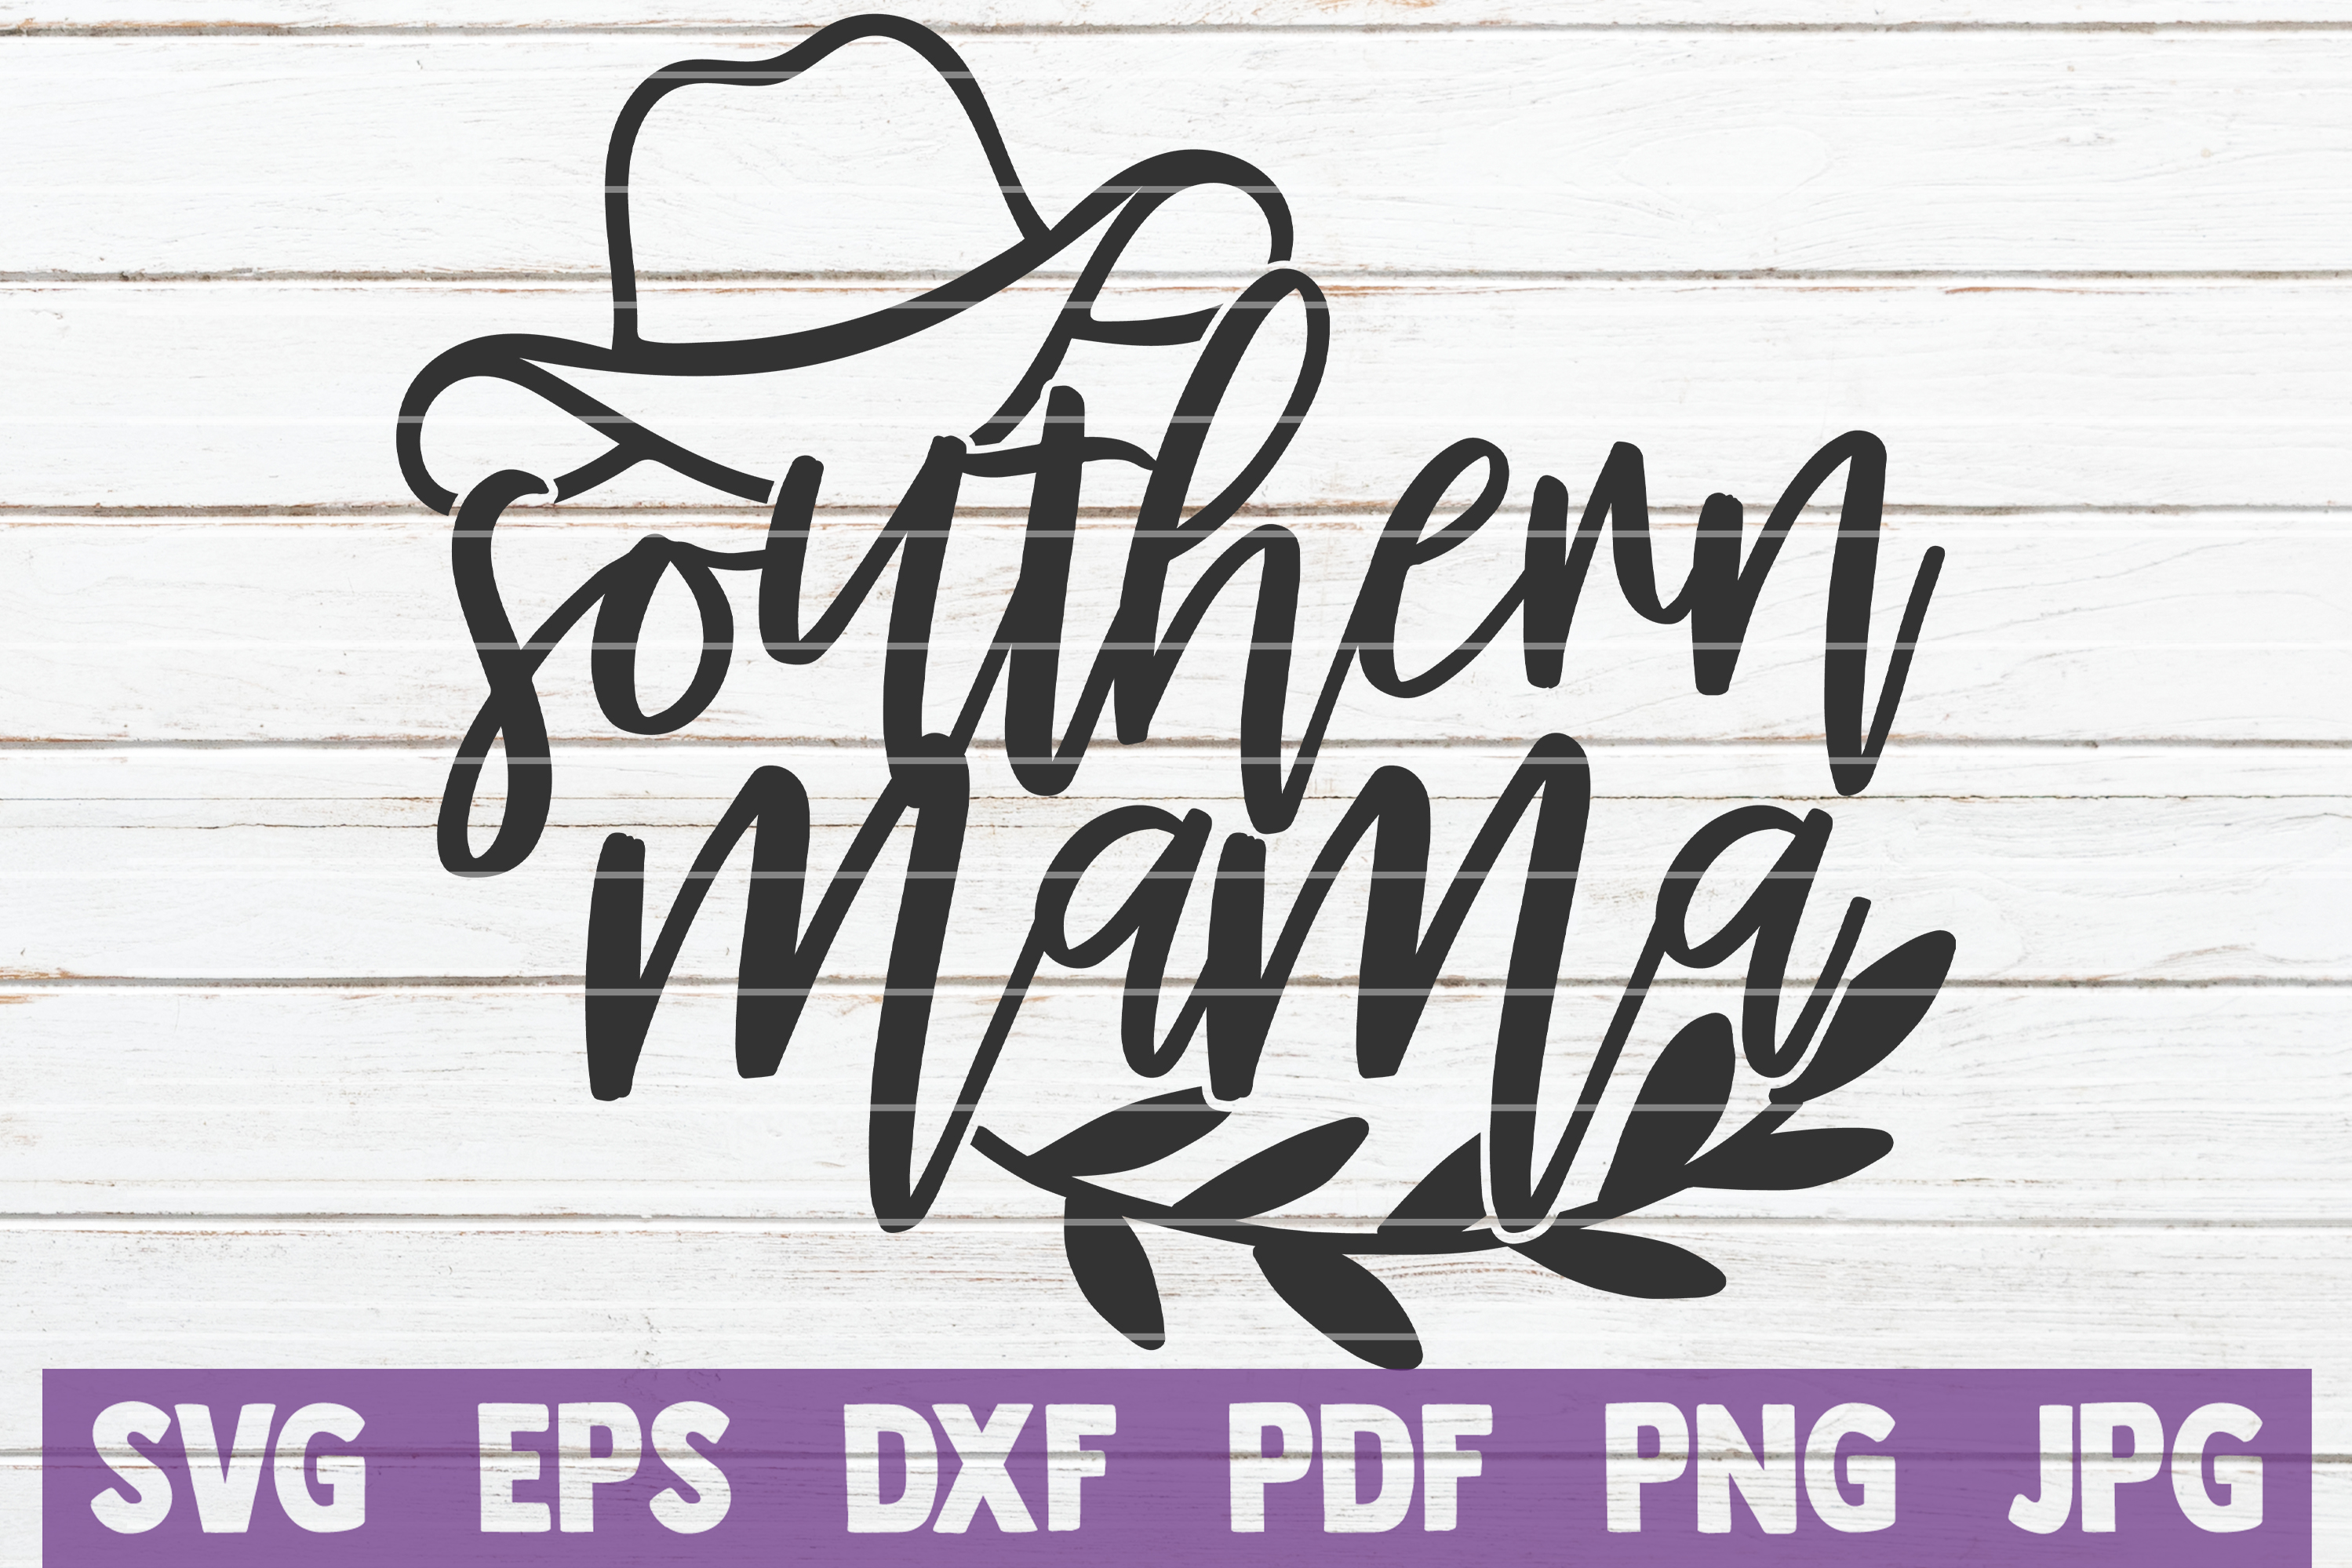 Download Free Southern Mama Graphic By Mintymarshmallows Creative Fabrica for Cricut Explore, Silhouette and other cutting machines.